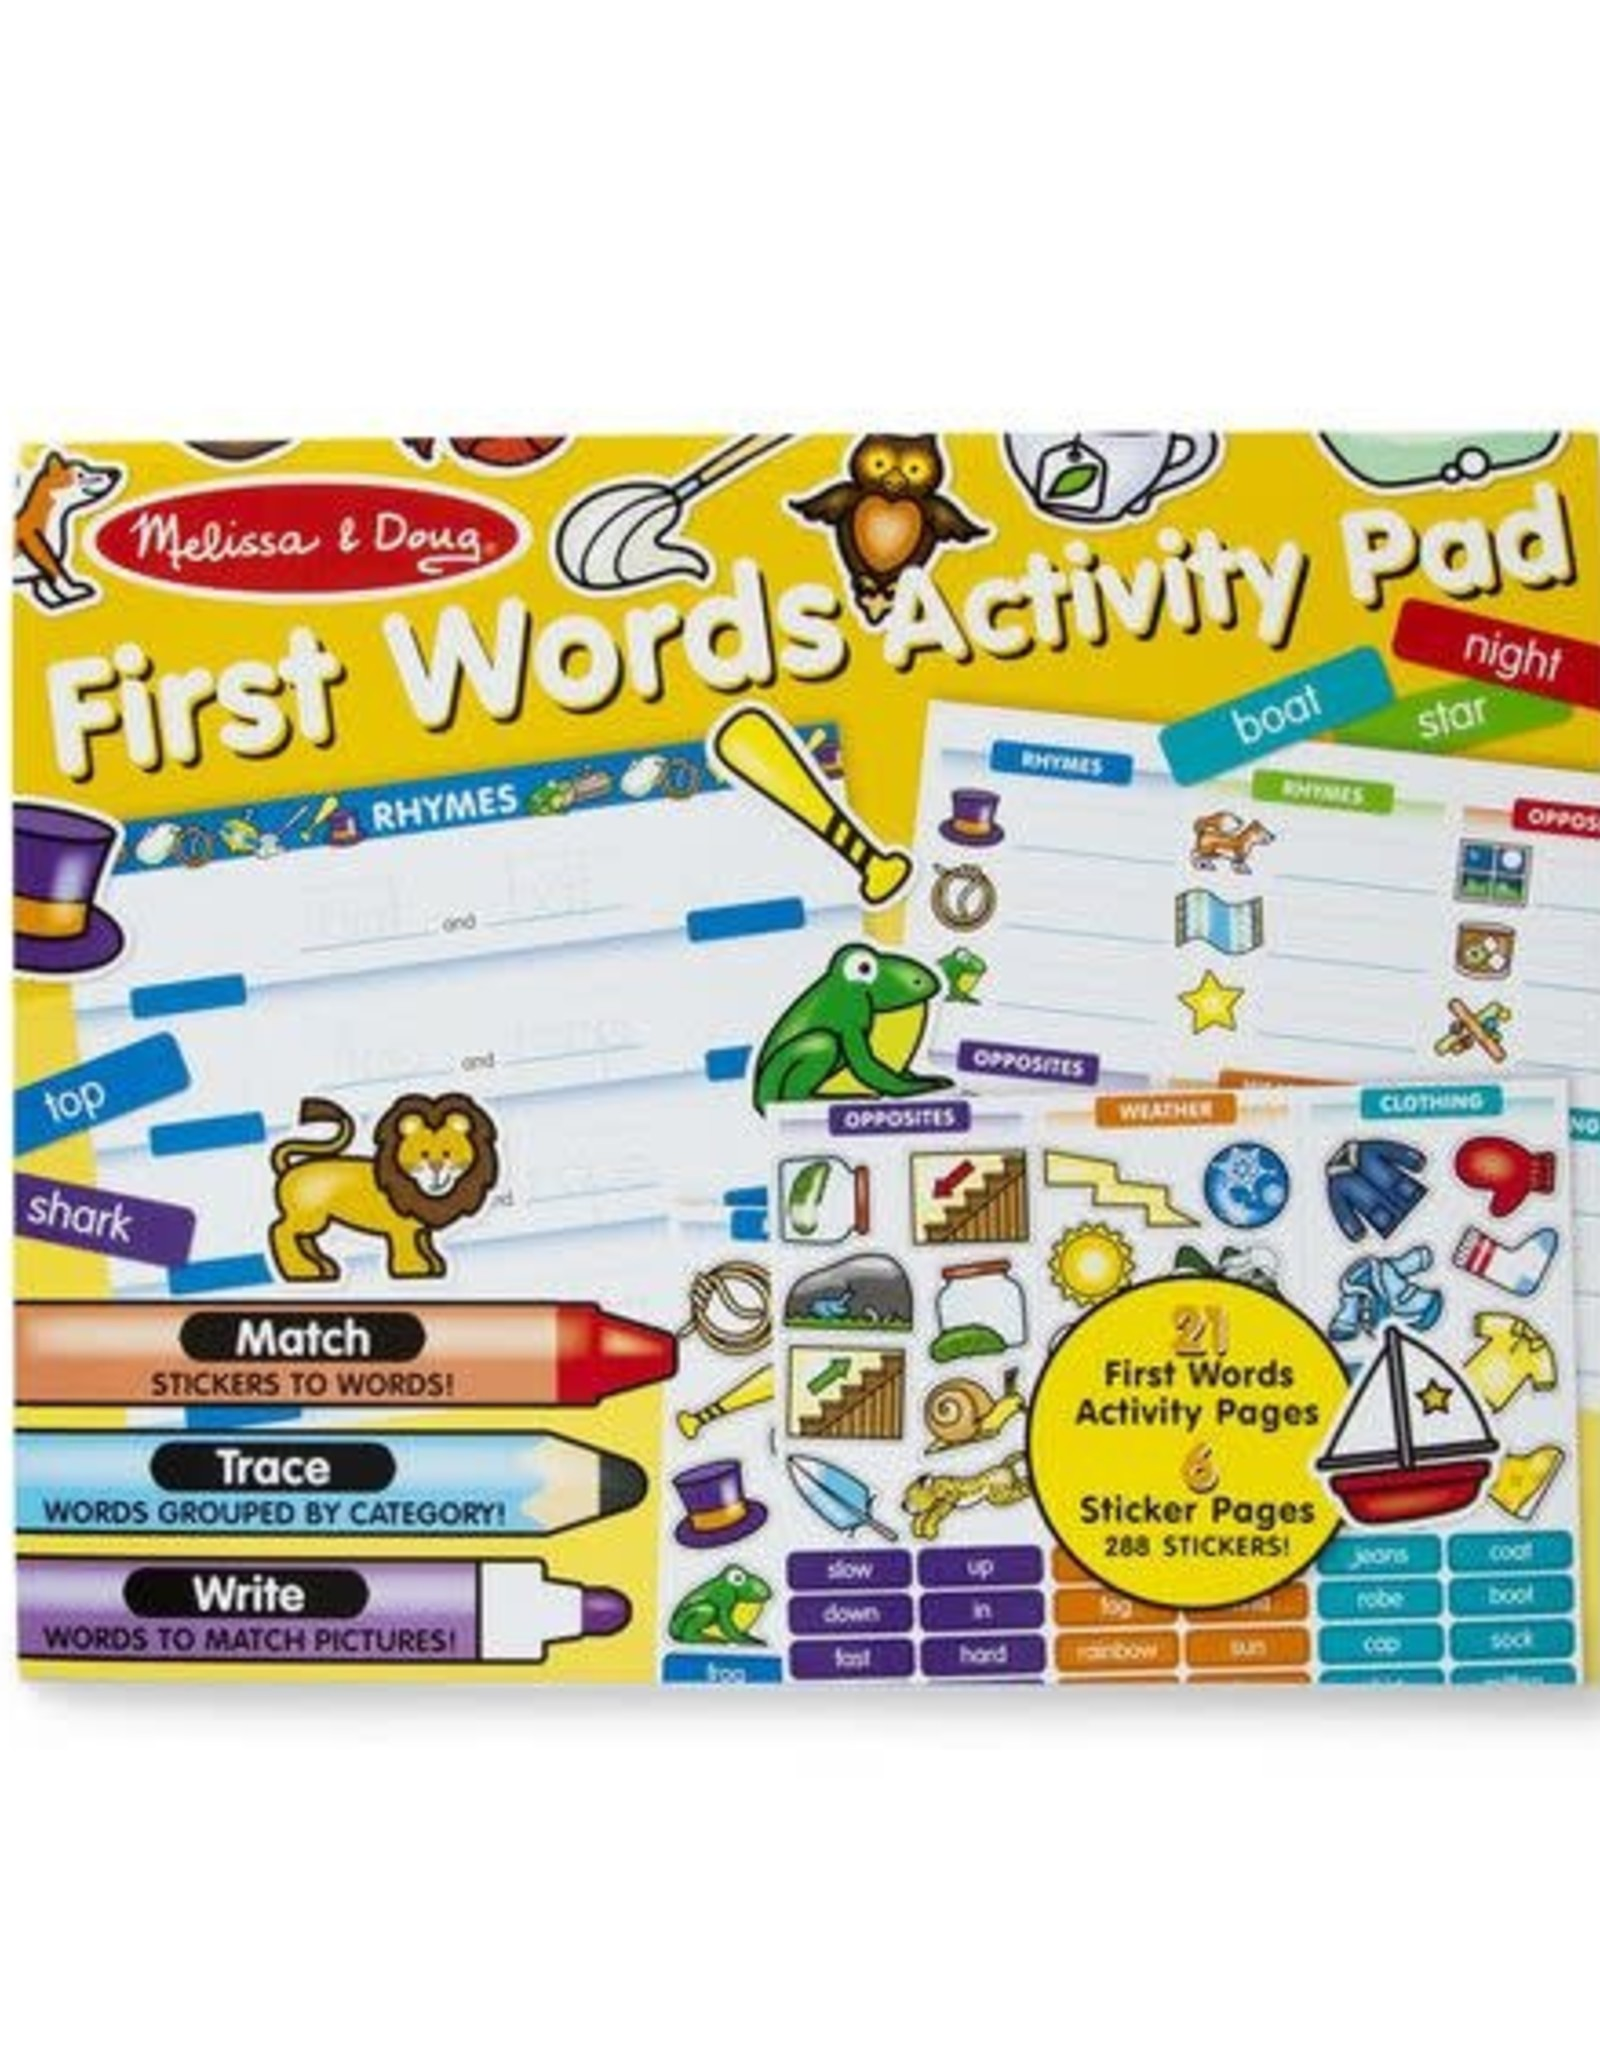 Melissa & Doug MD Activity Pad First Words